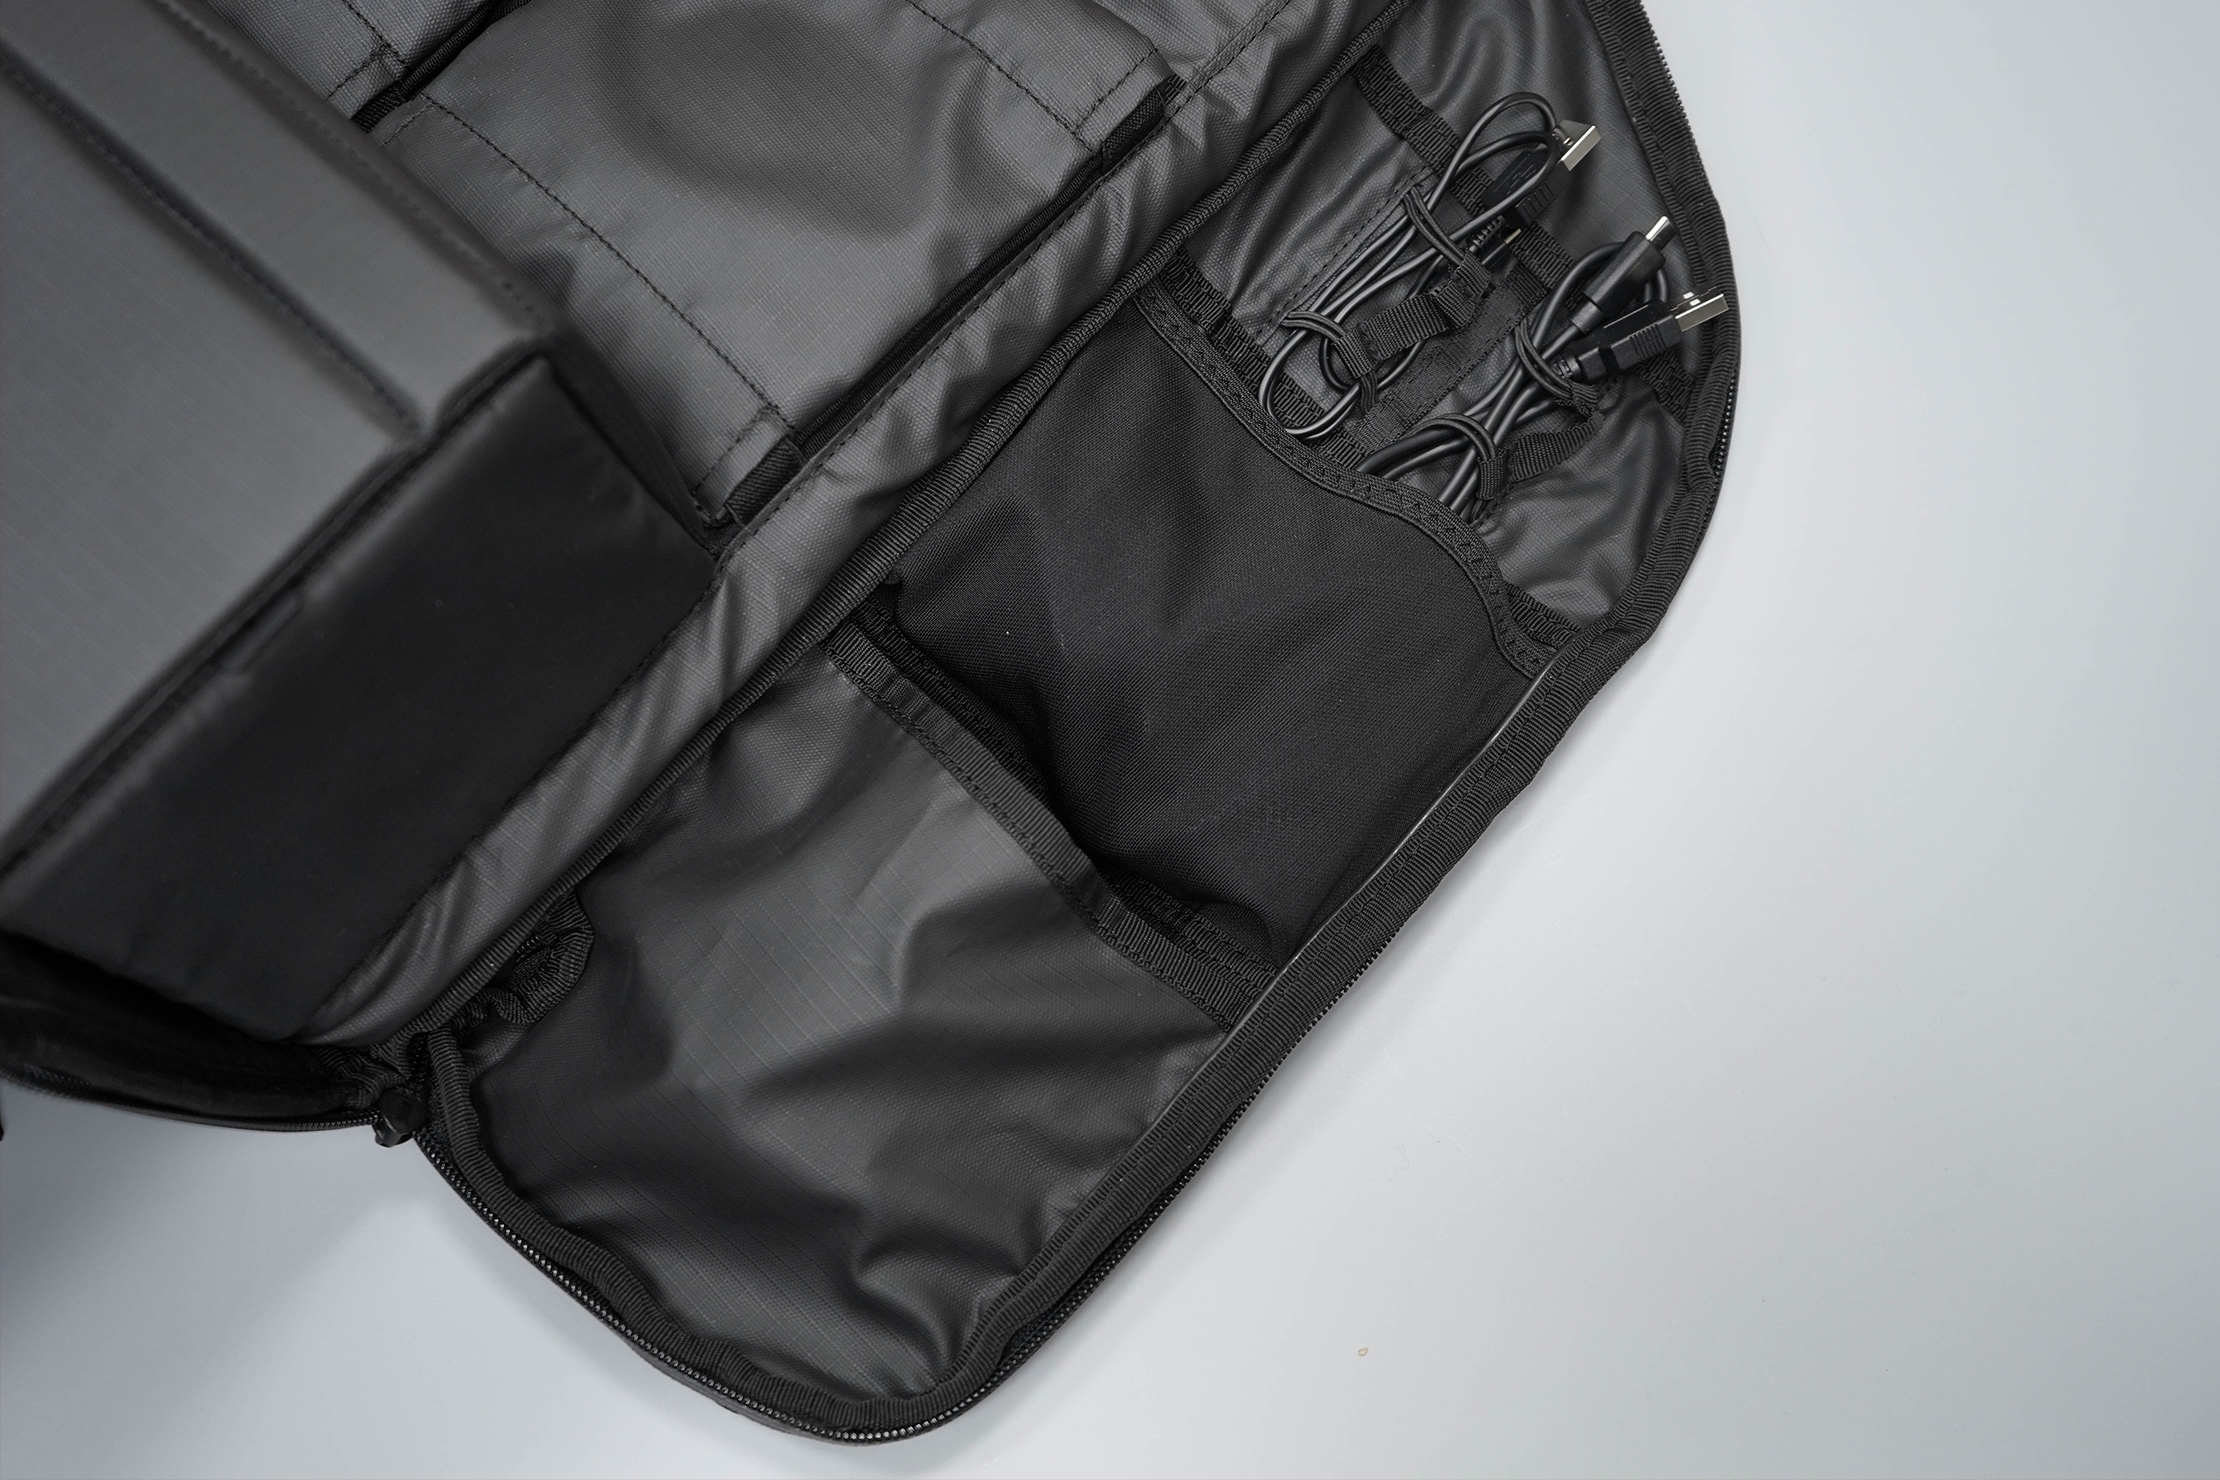 WANDRD DUO Daypack Right Side Flap Organization